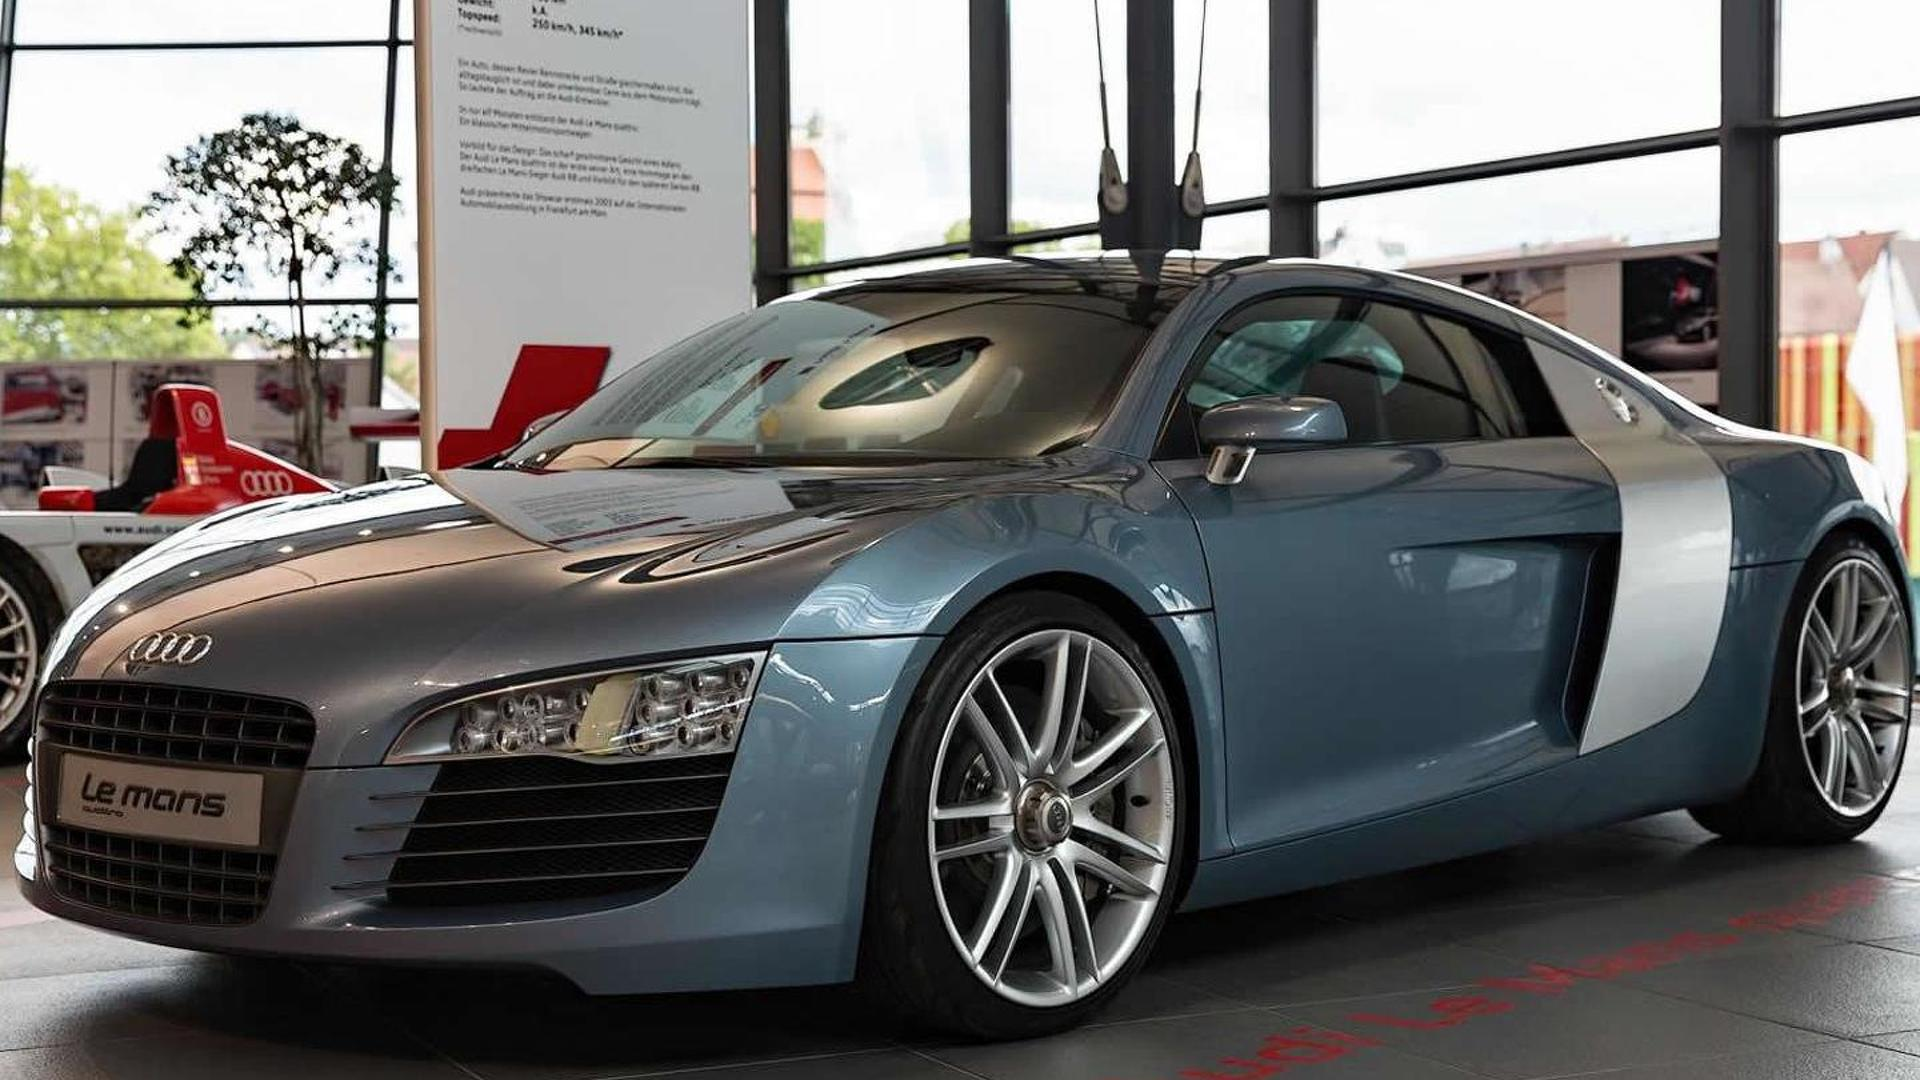 2003 audi le mans quattro concept displayed together with 2015 r8 v10 plus. Black Bedroom Furniture Sets. Home Design Ideas